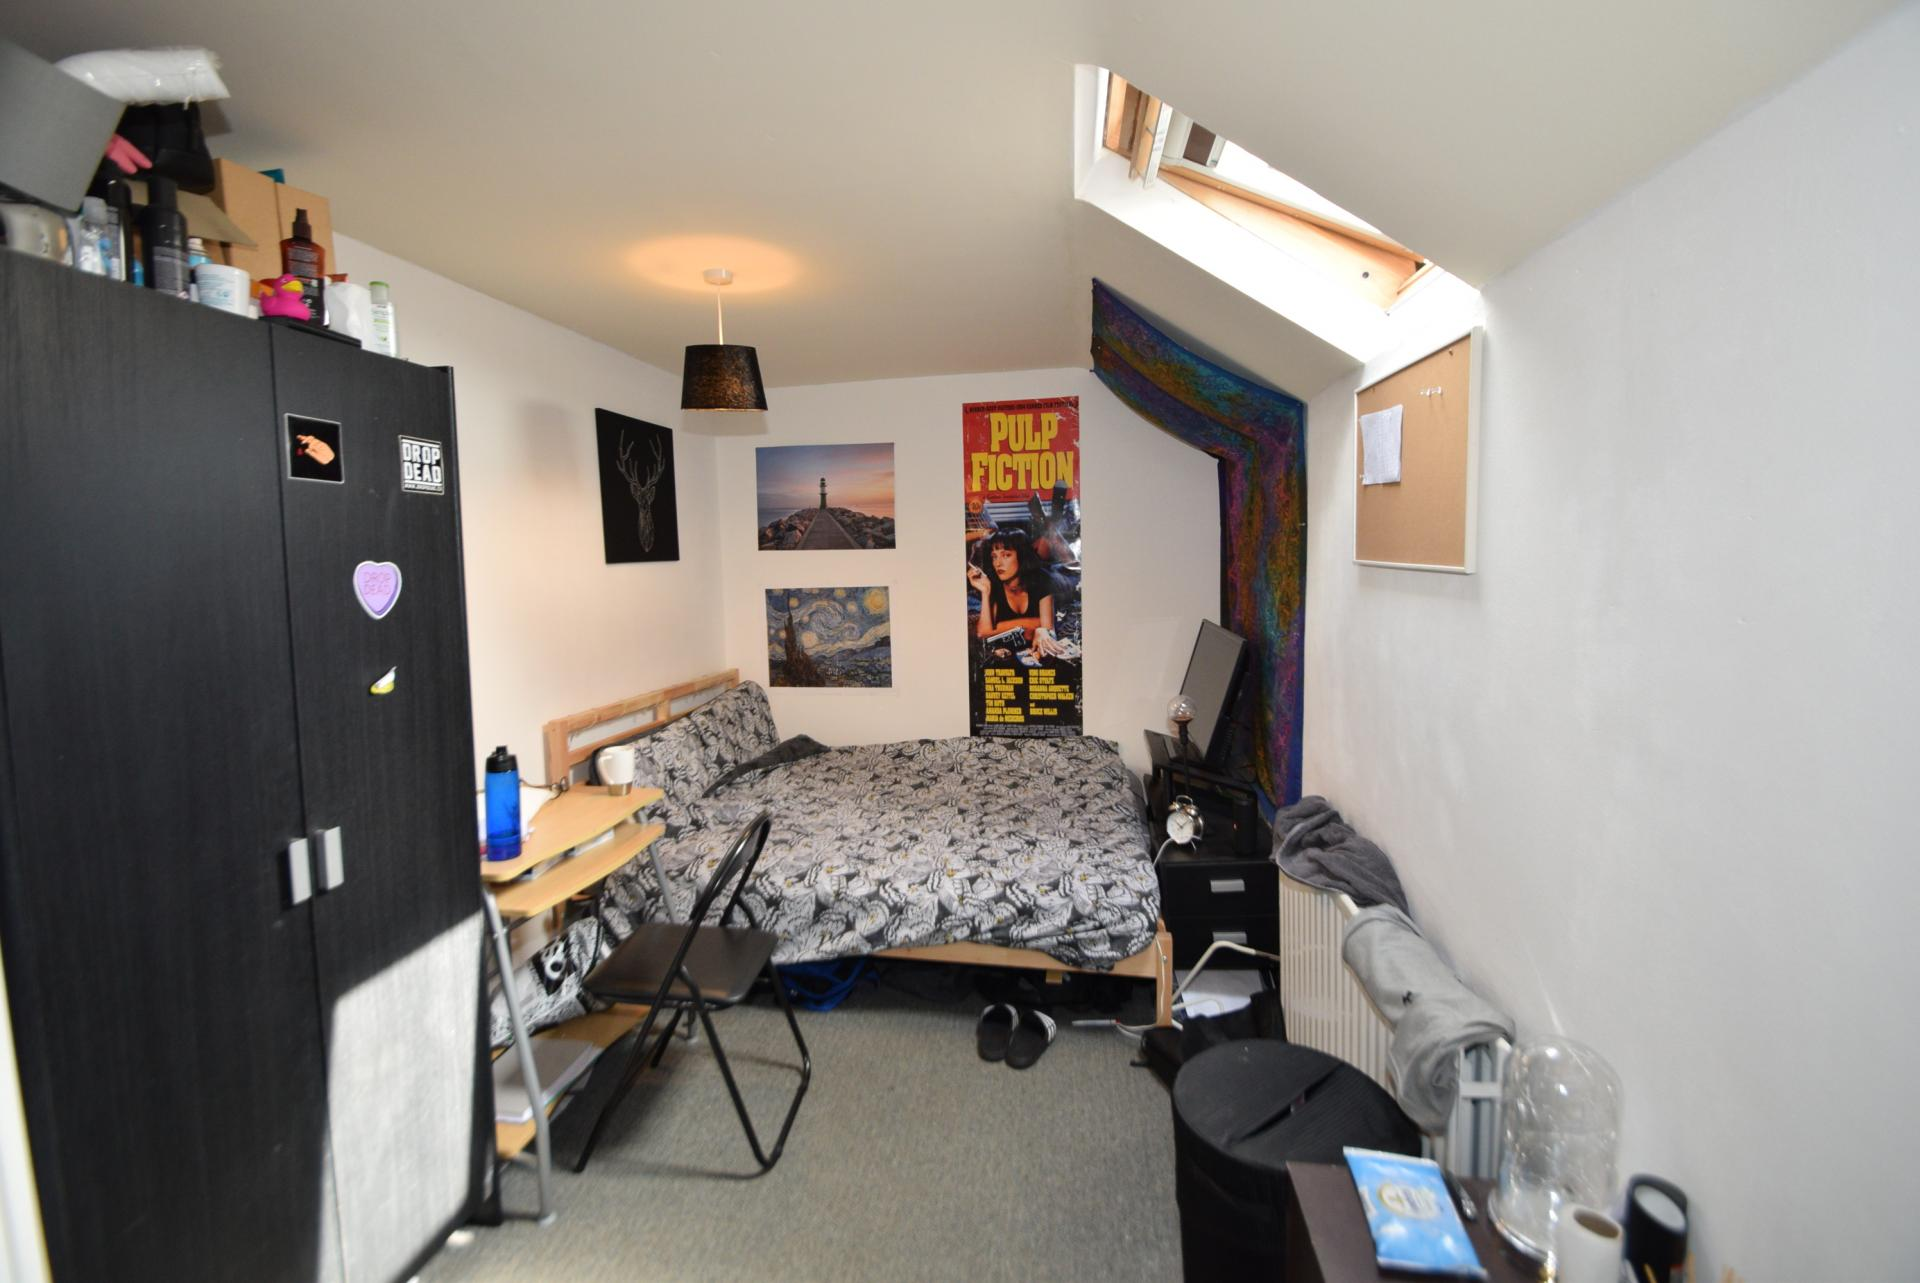 Sheffield Student Housing- Bedroom